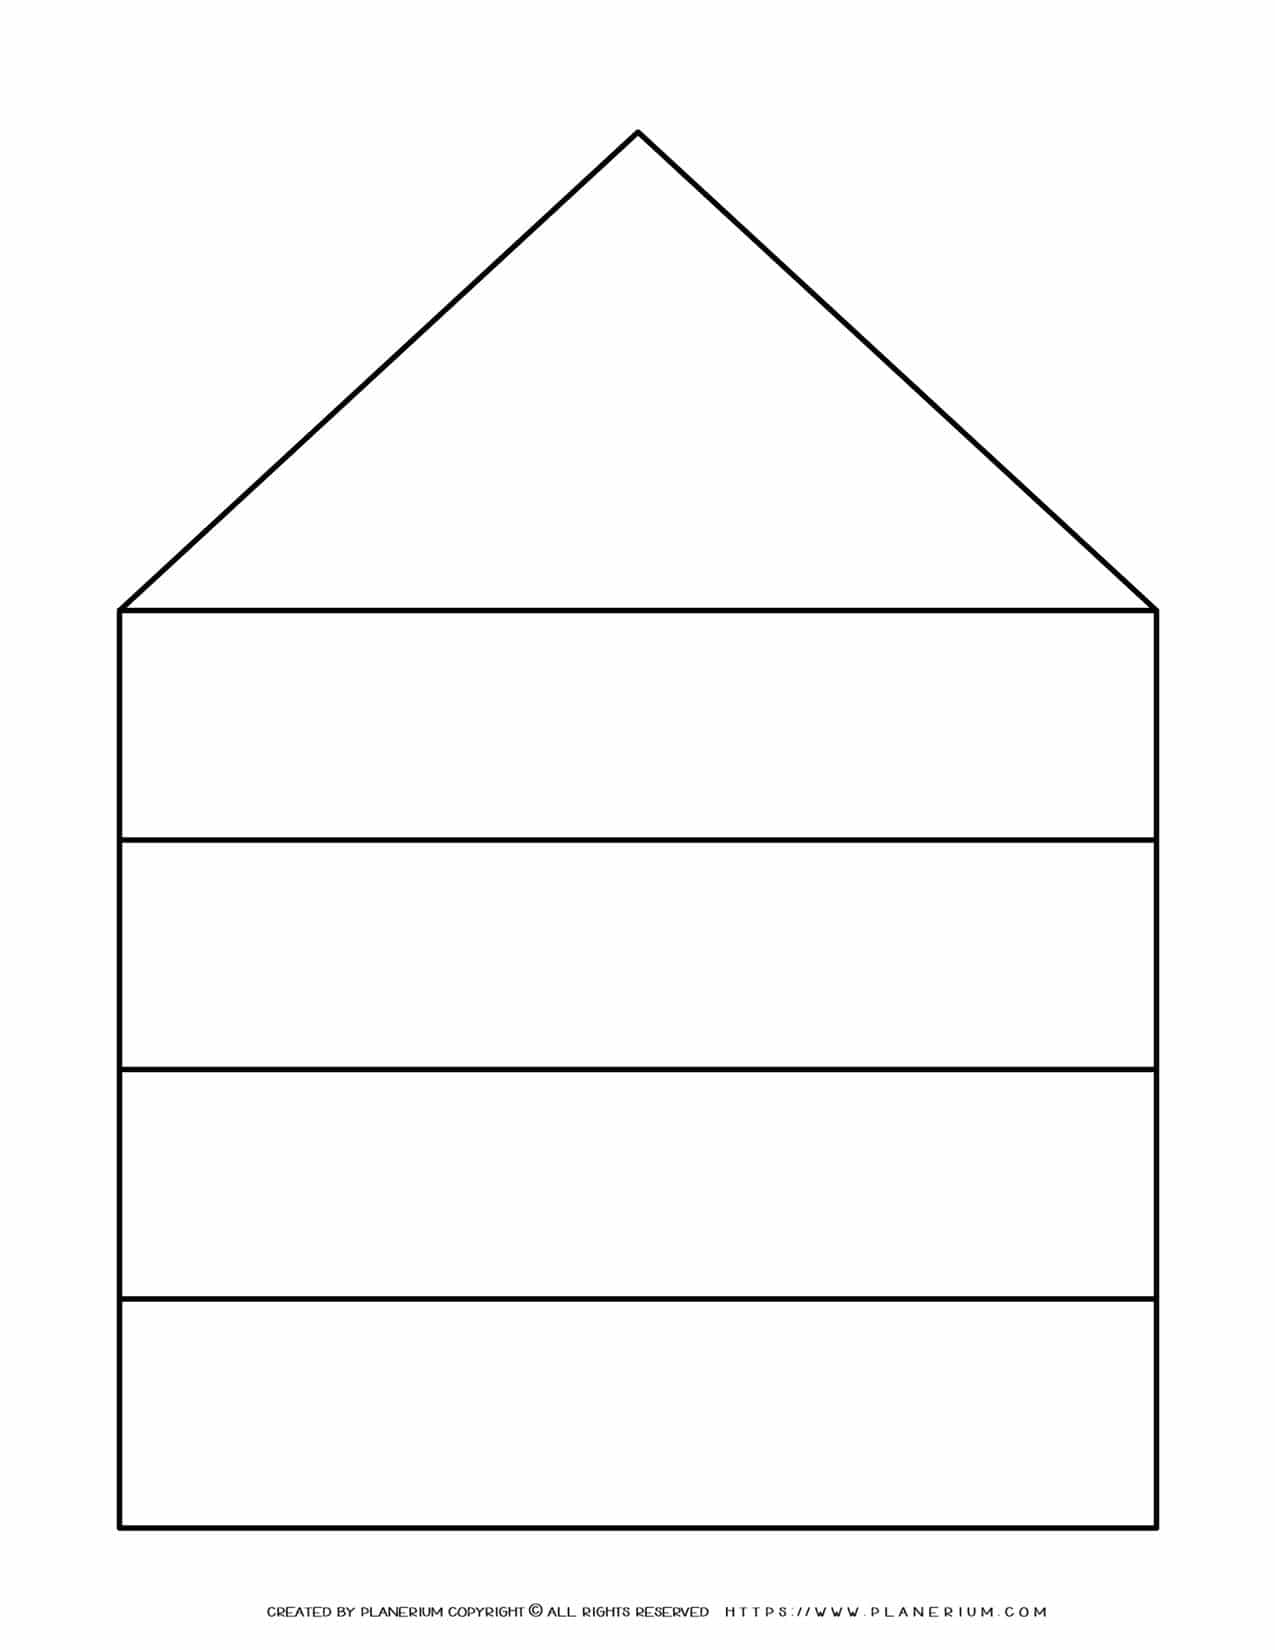 Graphic Organizer Templates - House Chart with Four Rows   Planerium